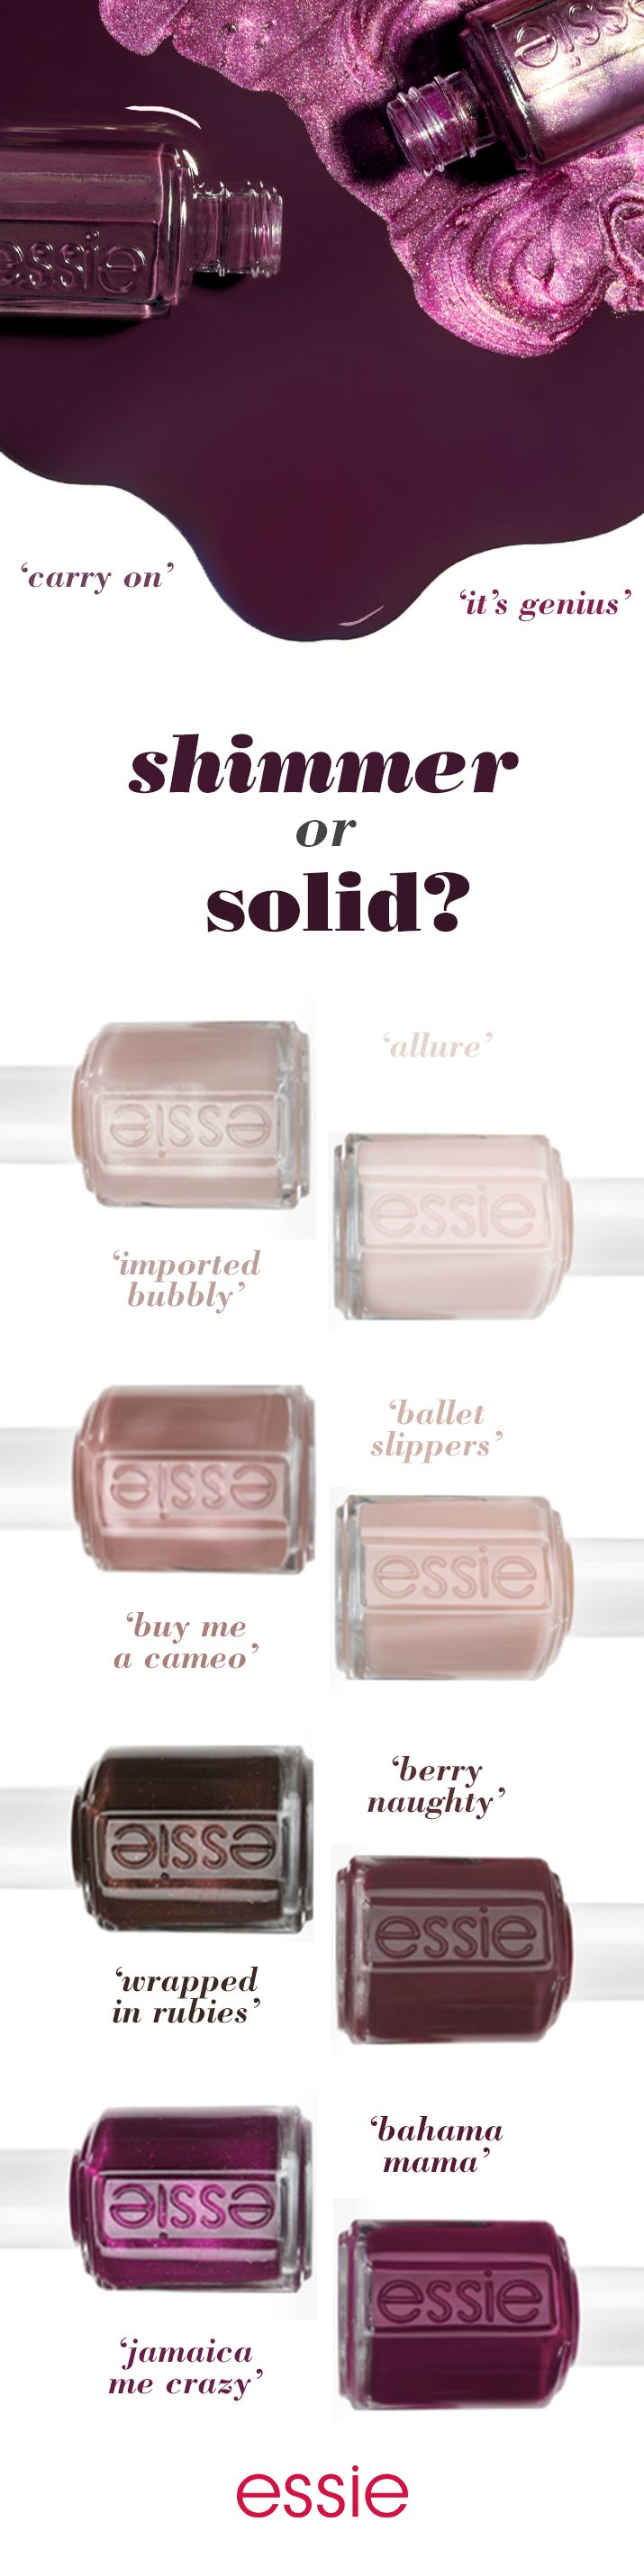 It's hard to pick a favorite nail polish, but if you had to which would it be - a sparkling beige 'imported bubbly' or a seductive sheer like 'allure'? Maybe you love the shimmering mocha 'buy me a cameo' or pale pink 'ballet slippers'. Are you a deep burgundy 'wrapped in rubies' or a luscious 'berry naughty' kind of girl? Is the shimmering magenta 'jamaica me crazy' your style or are you a deep plum 'bahama mama'? Whichever shade you choose, essie has the perfect shimmer or solid for you.